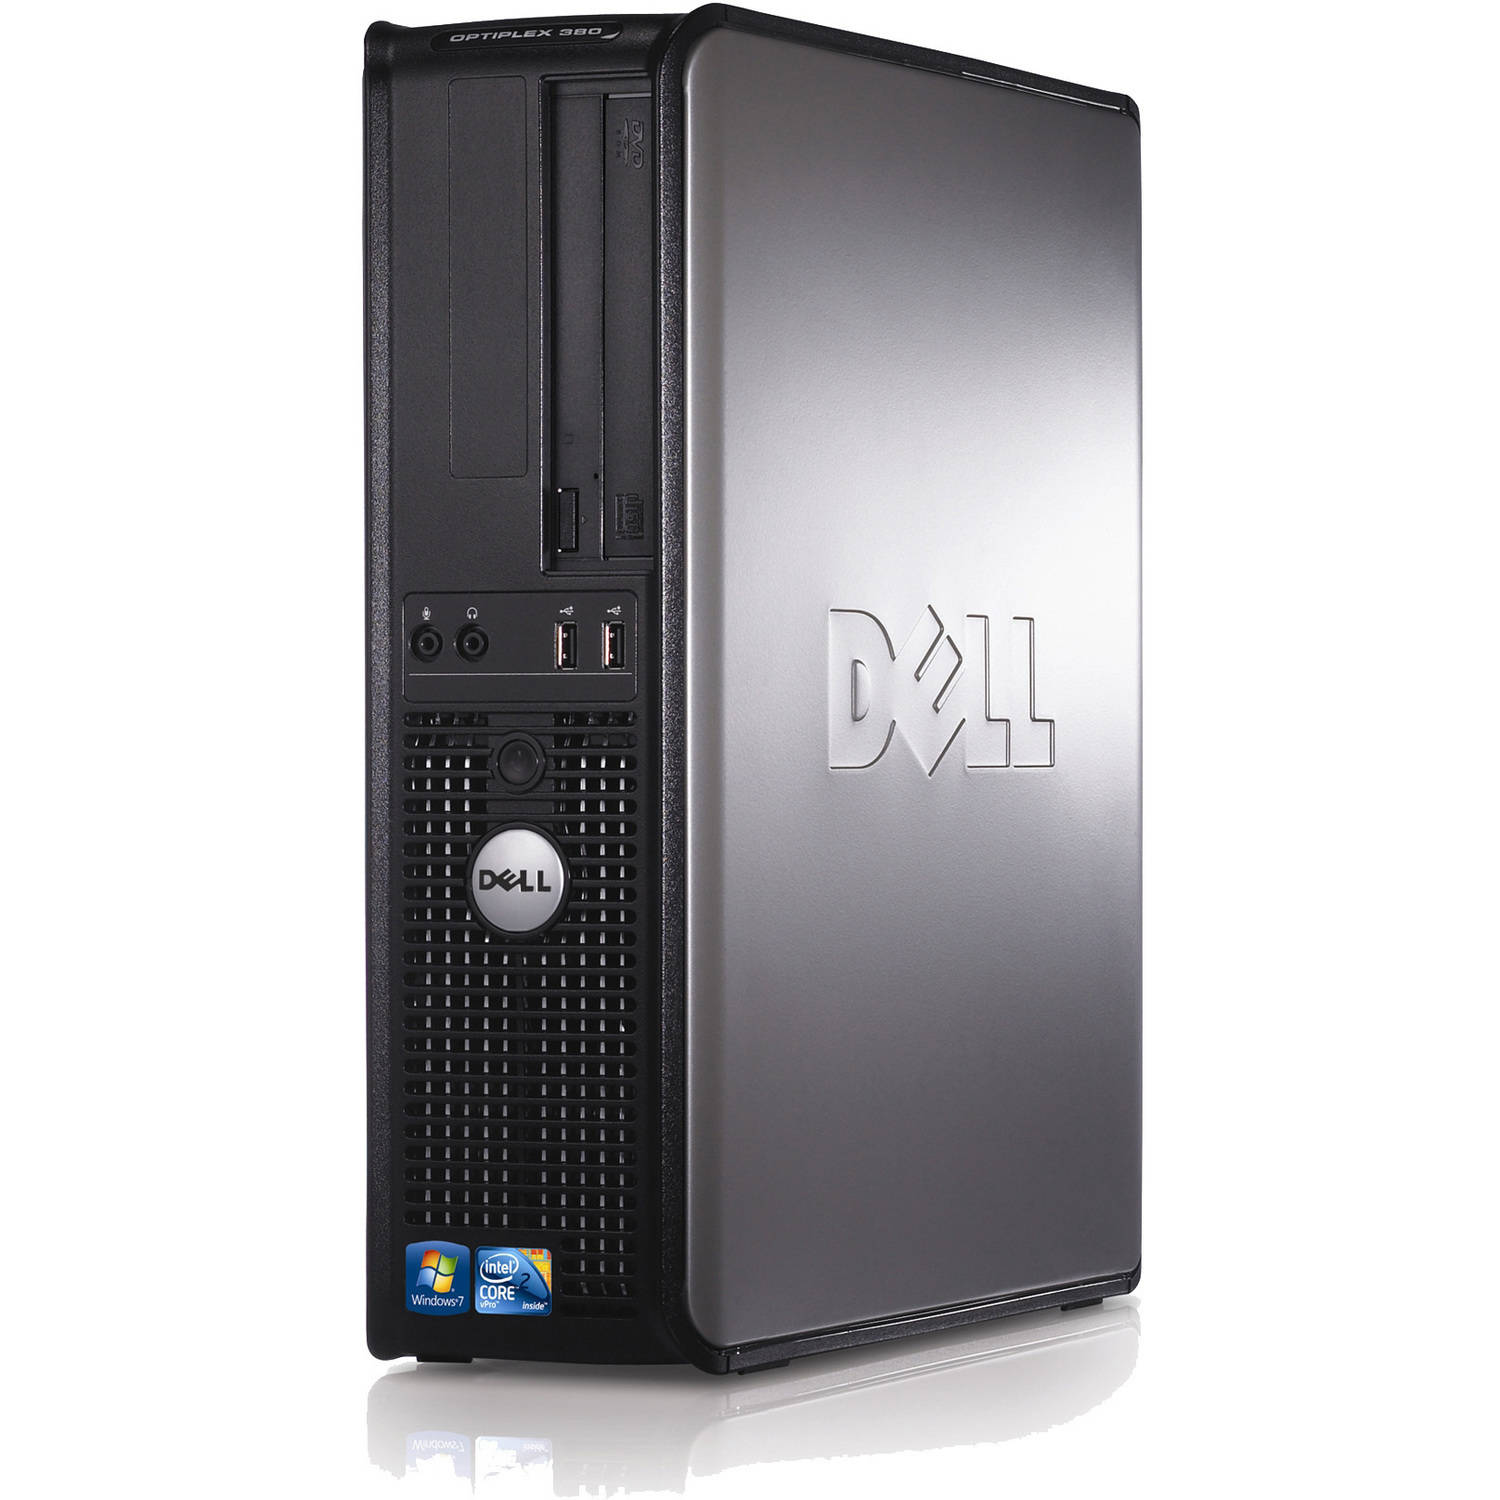 Refurbished Dell Optiplex 380 Small Form Factor Desktop PC with Intel Core 2 Duo 4GB RAM 160GB HDD and Win 10 Pro (Monitor not included)